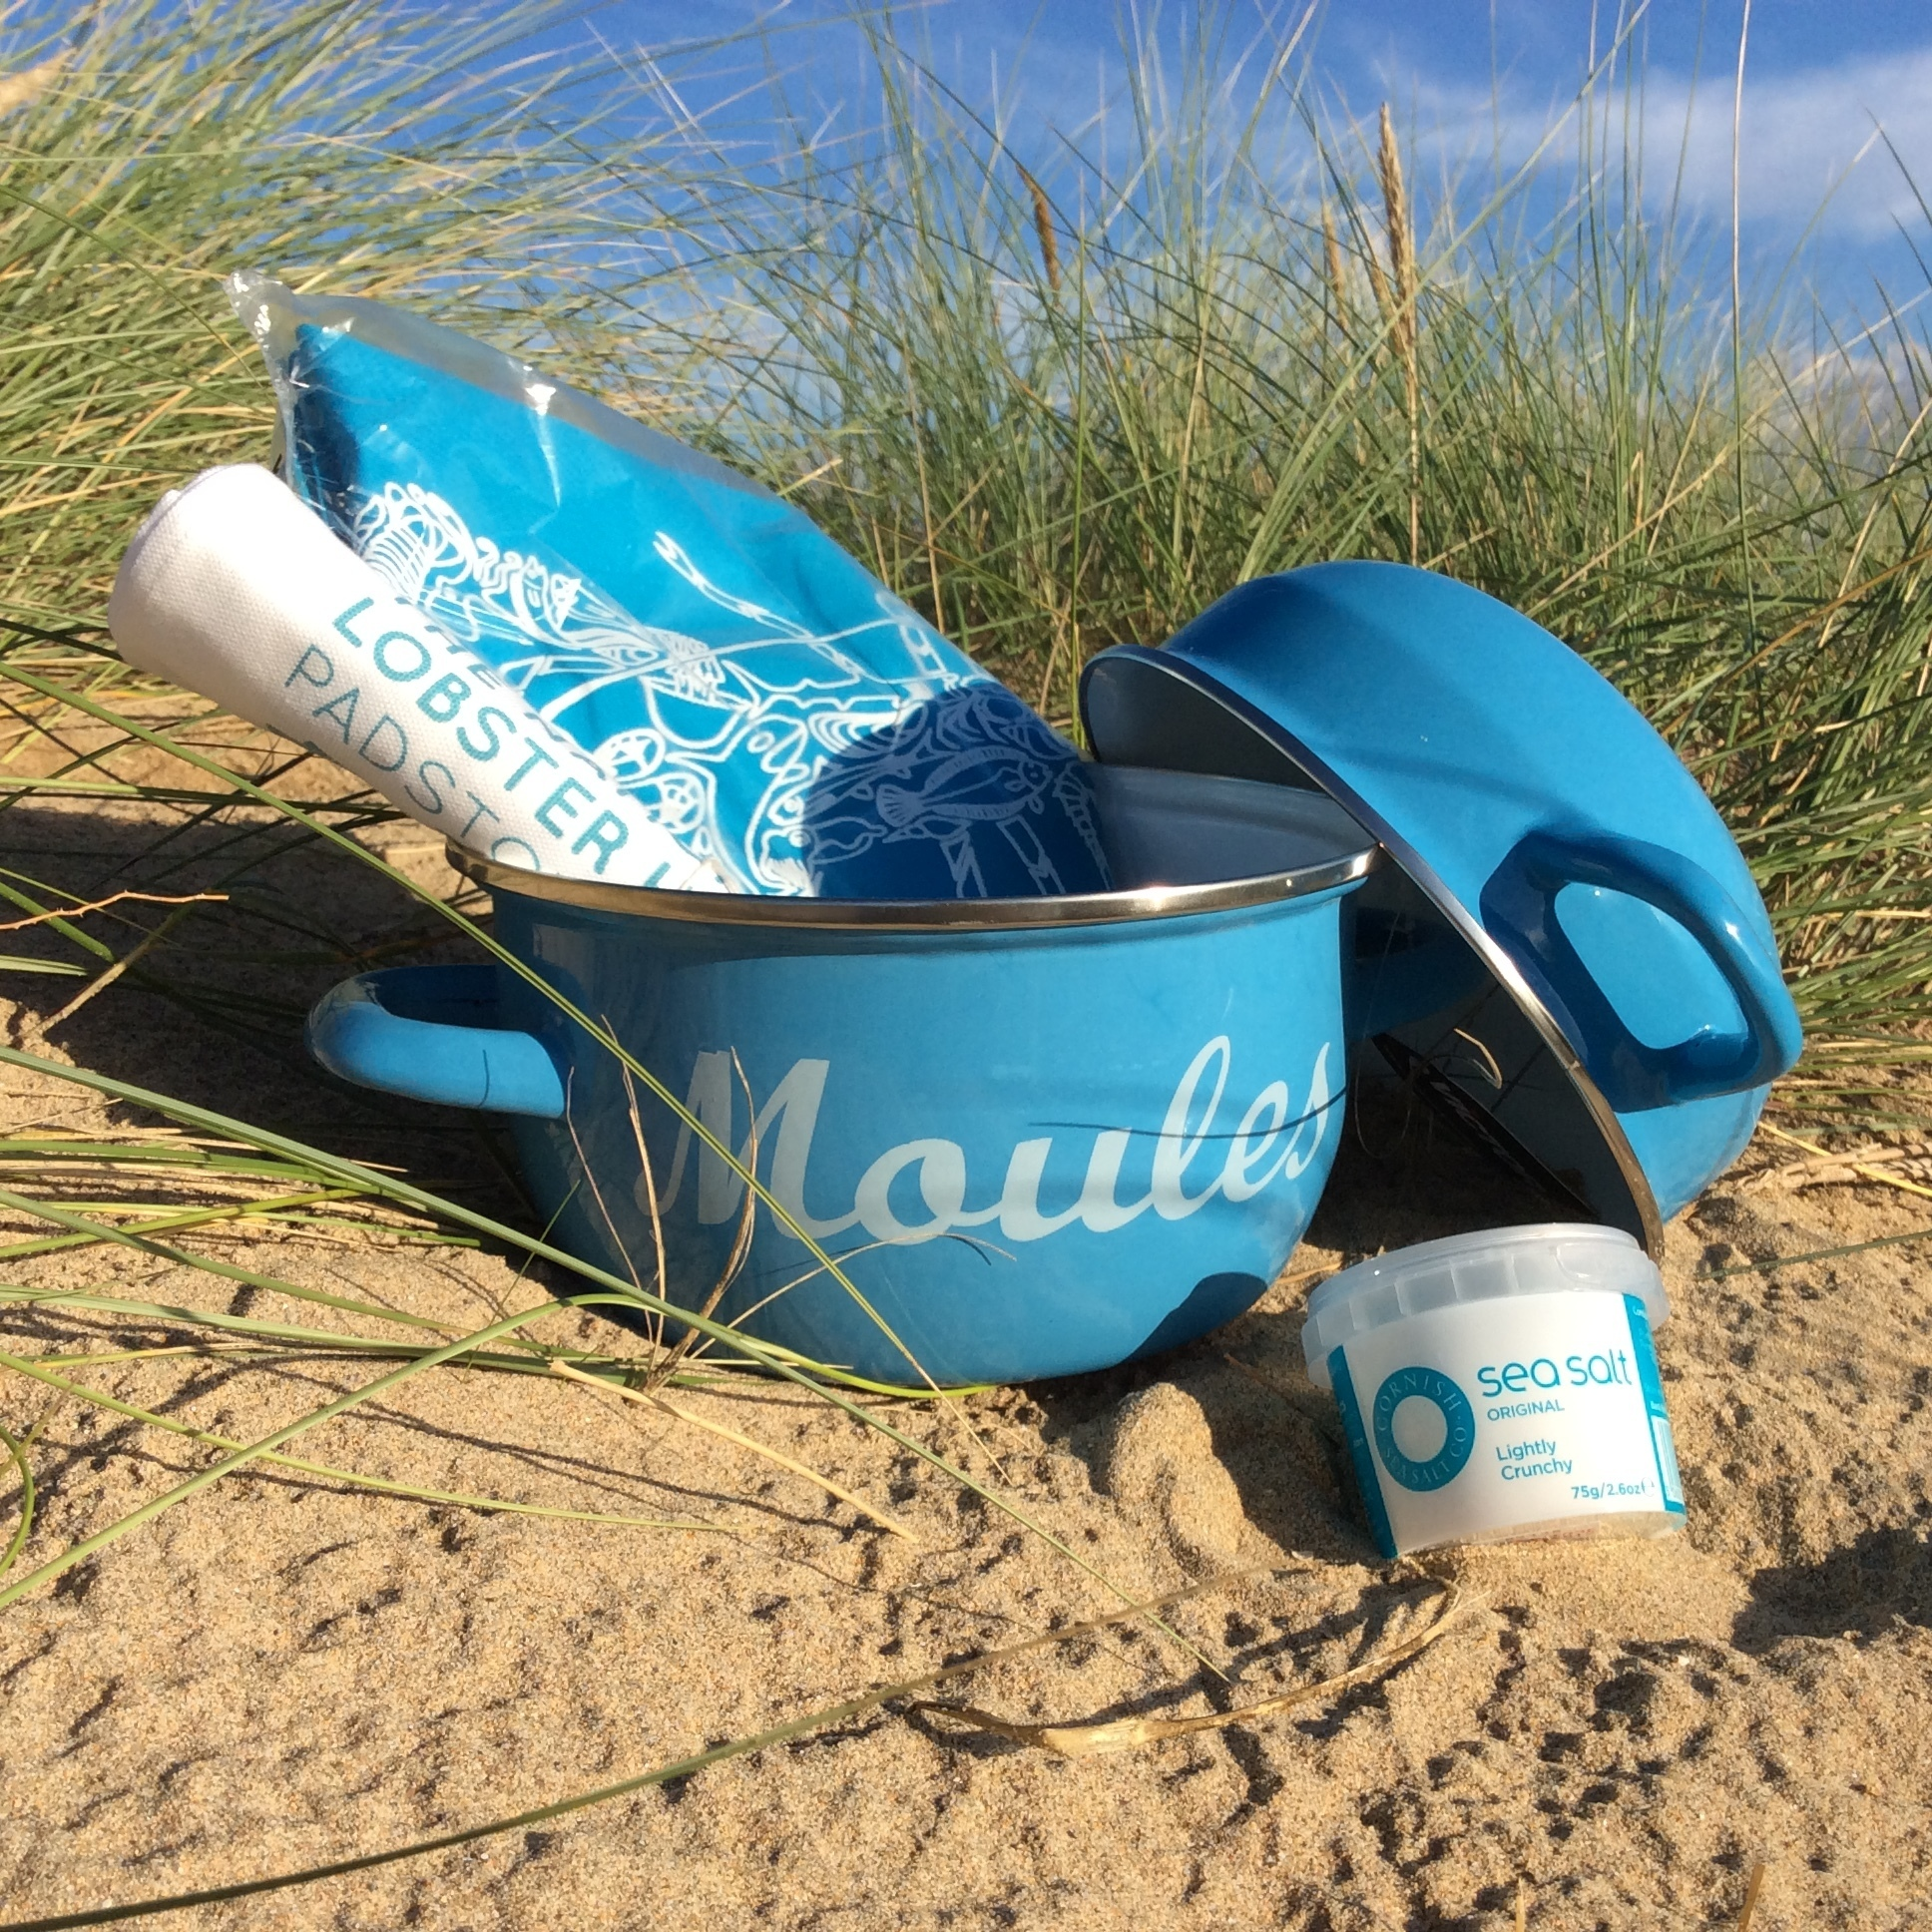 Fabulous Gift for a Moules Lover!